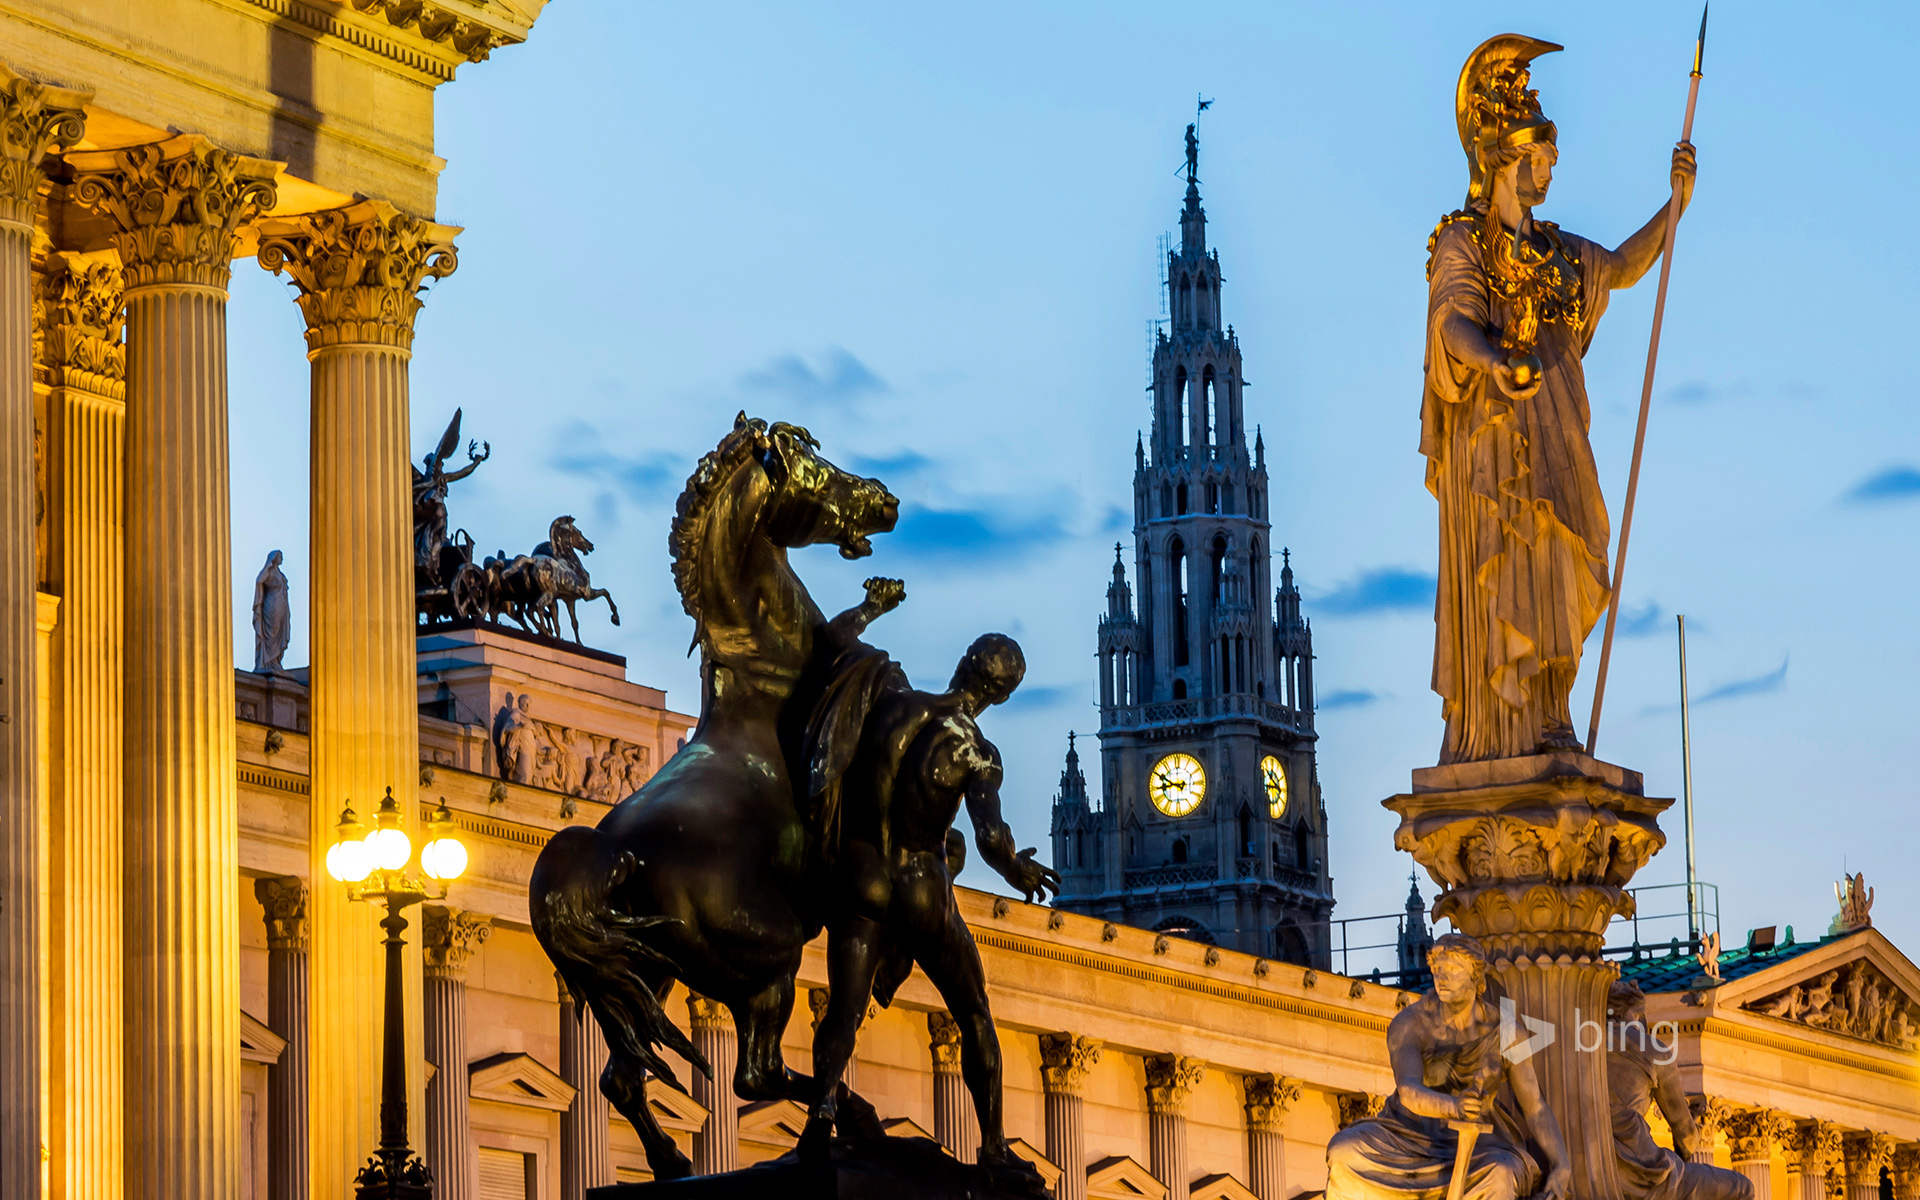 View to parliament building, town hall tower and statue of goddess Pallas Athene by twilight, Vienna, Austria